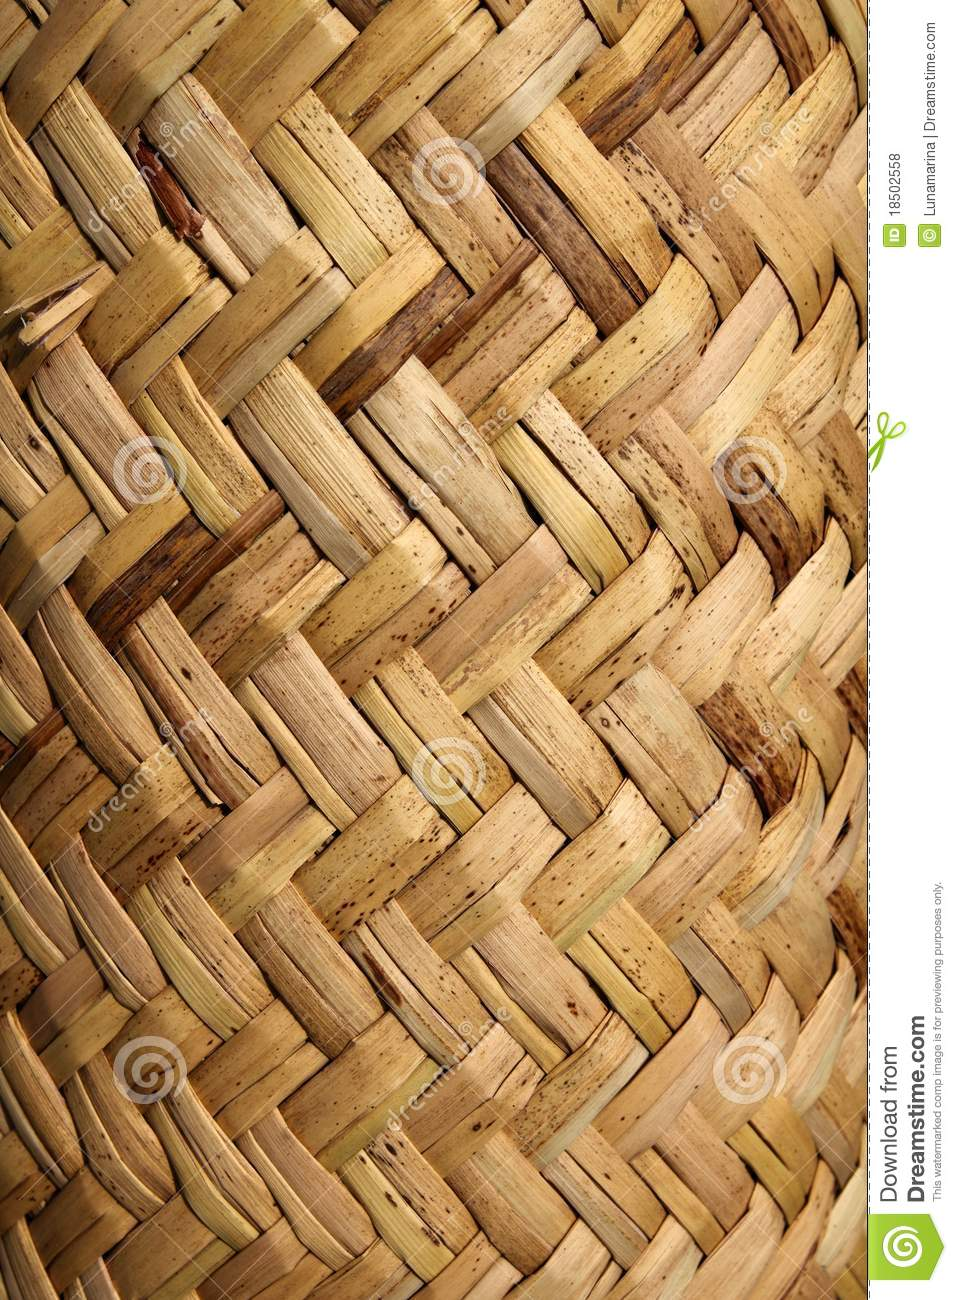 Handcraft Mexican Cane Basketry Vegetal Texture Royalty